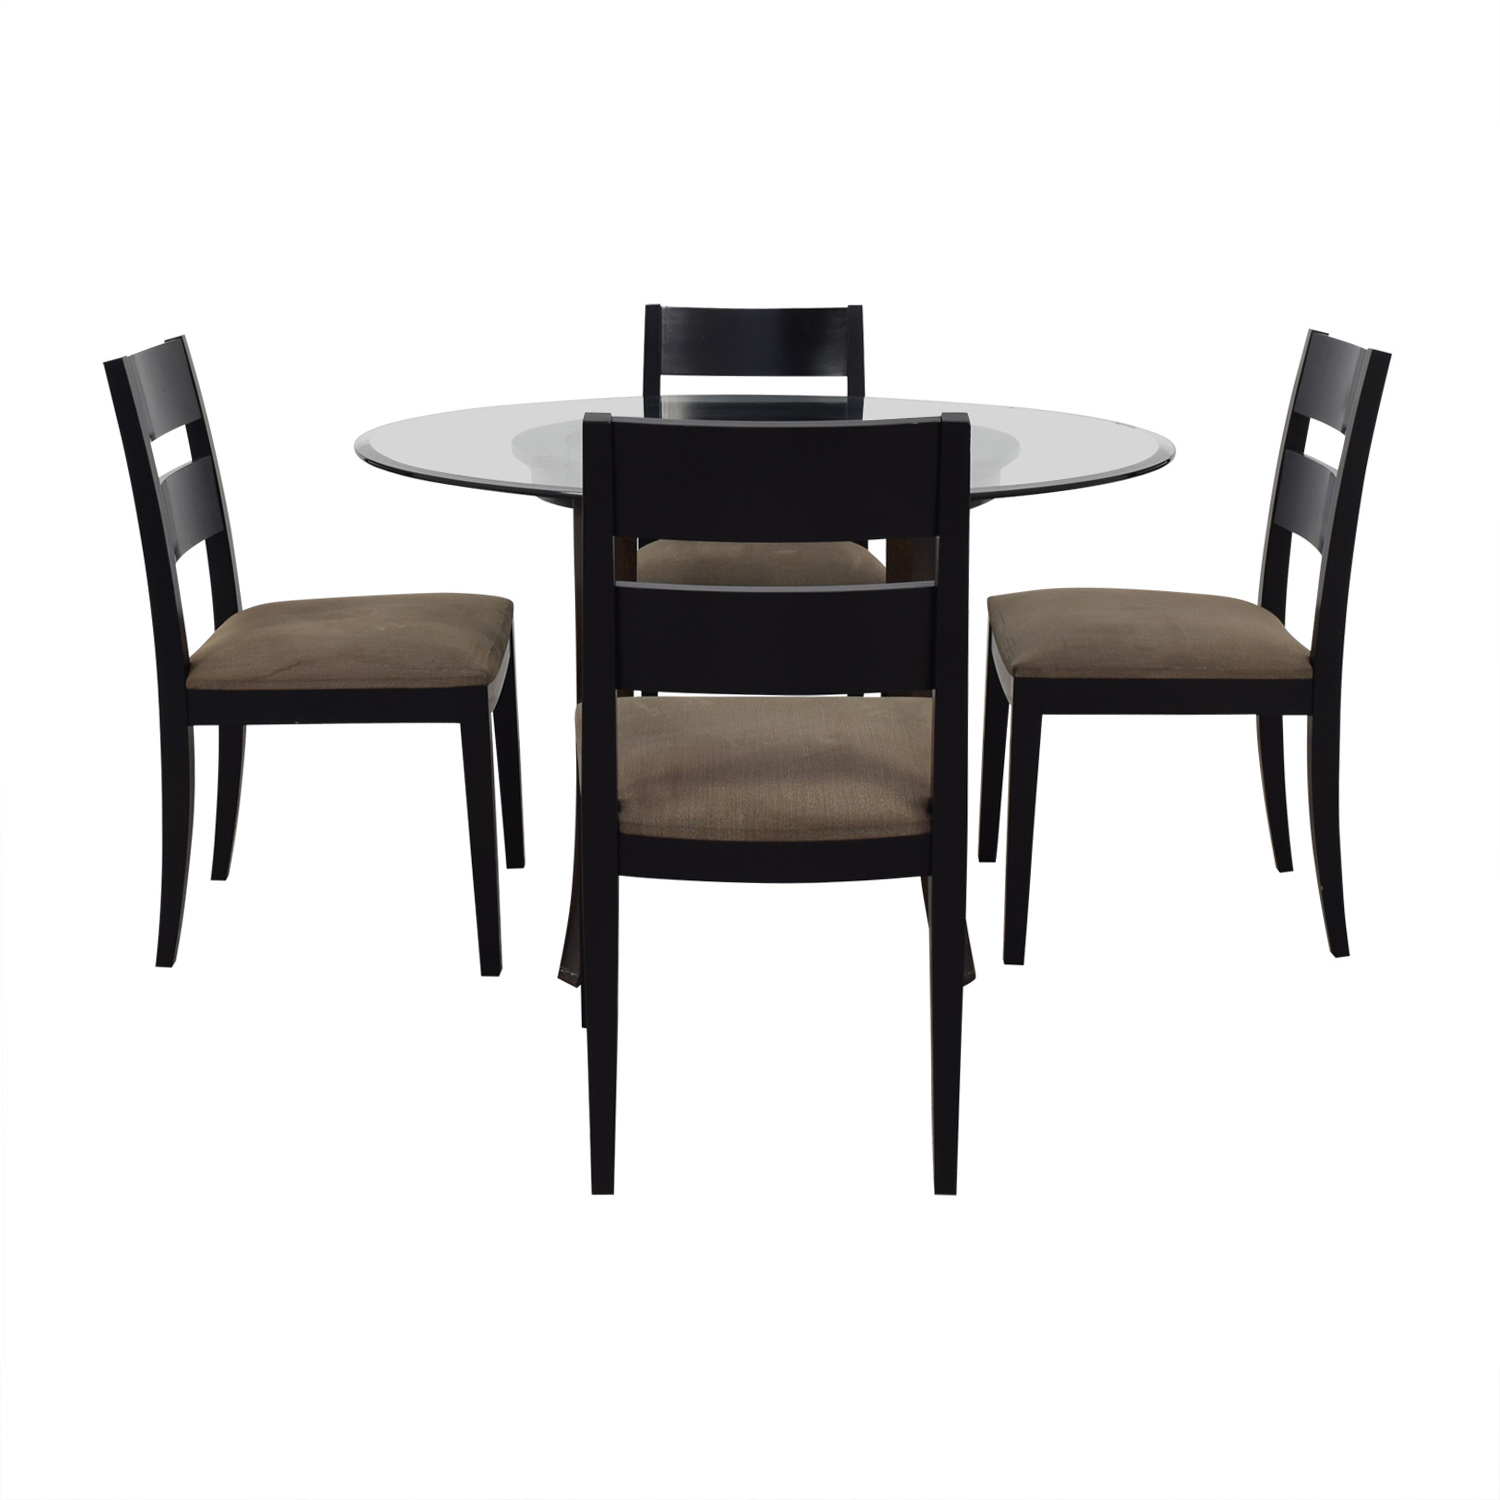 Crate & Barrel Halo Table With Basque Upholstered Chairs sale